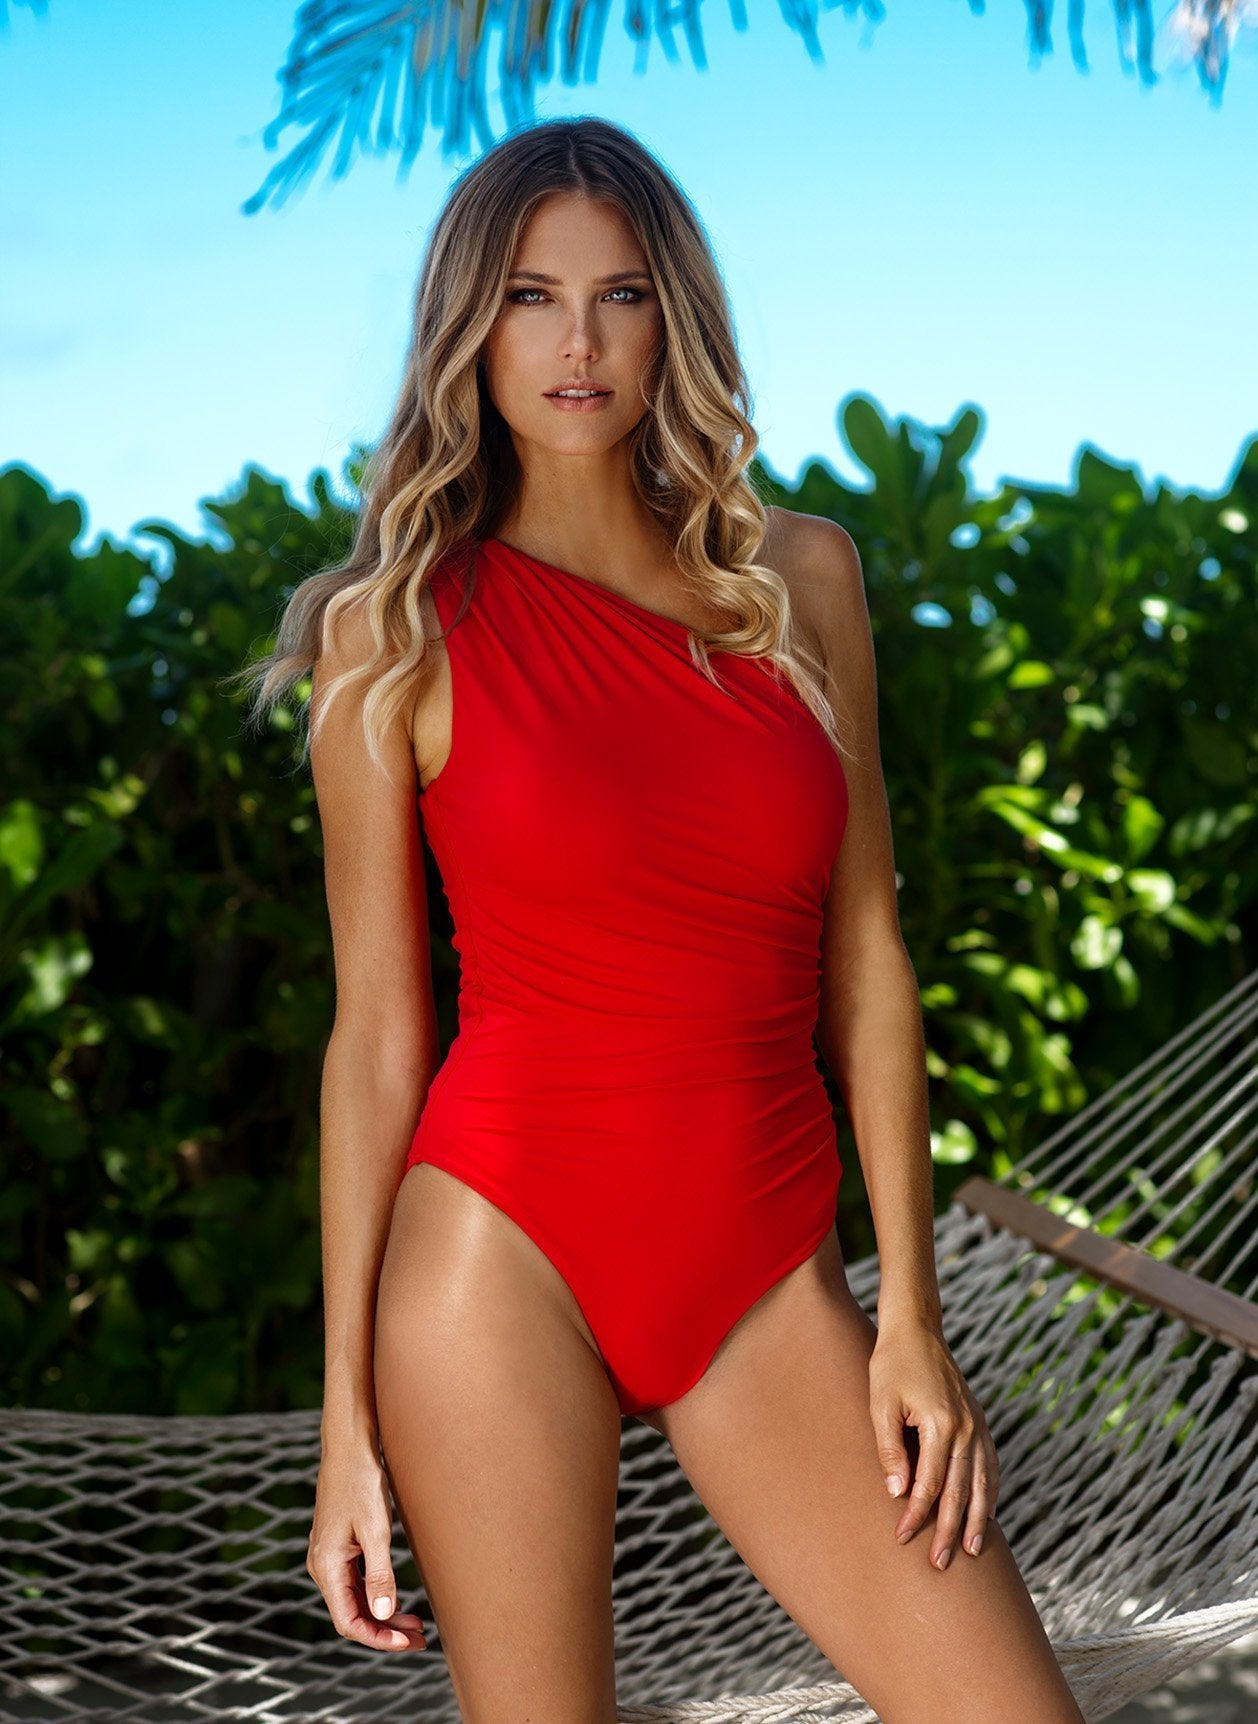 Arizona Red Swimsuit Lifestyle